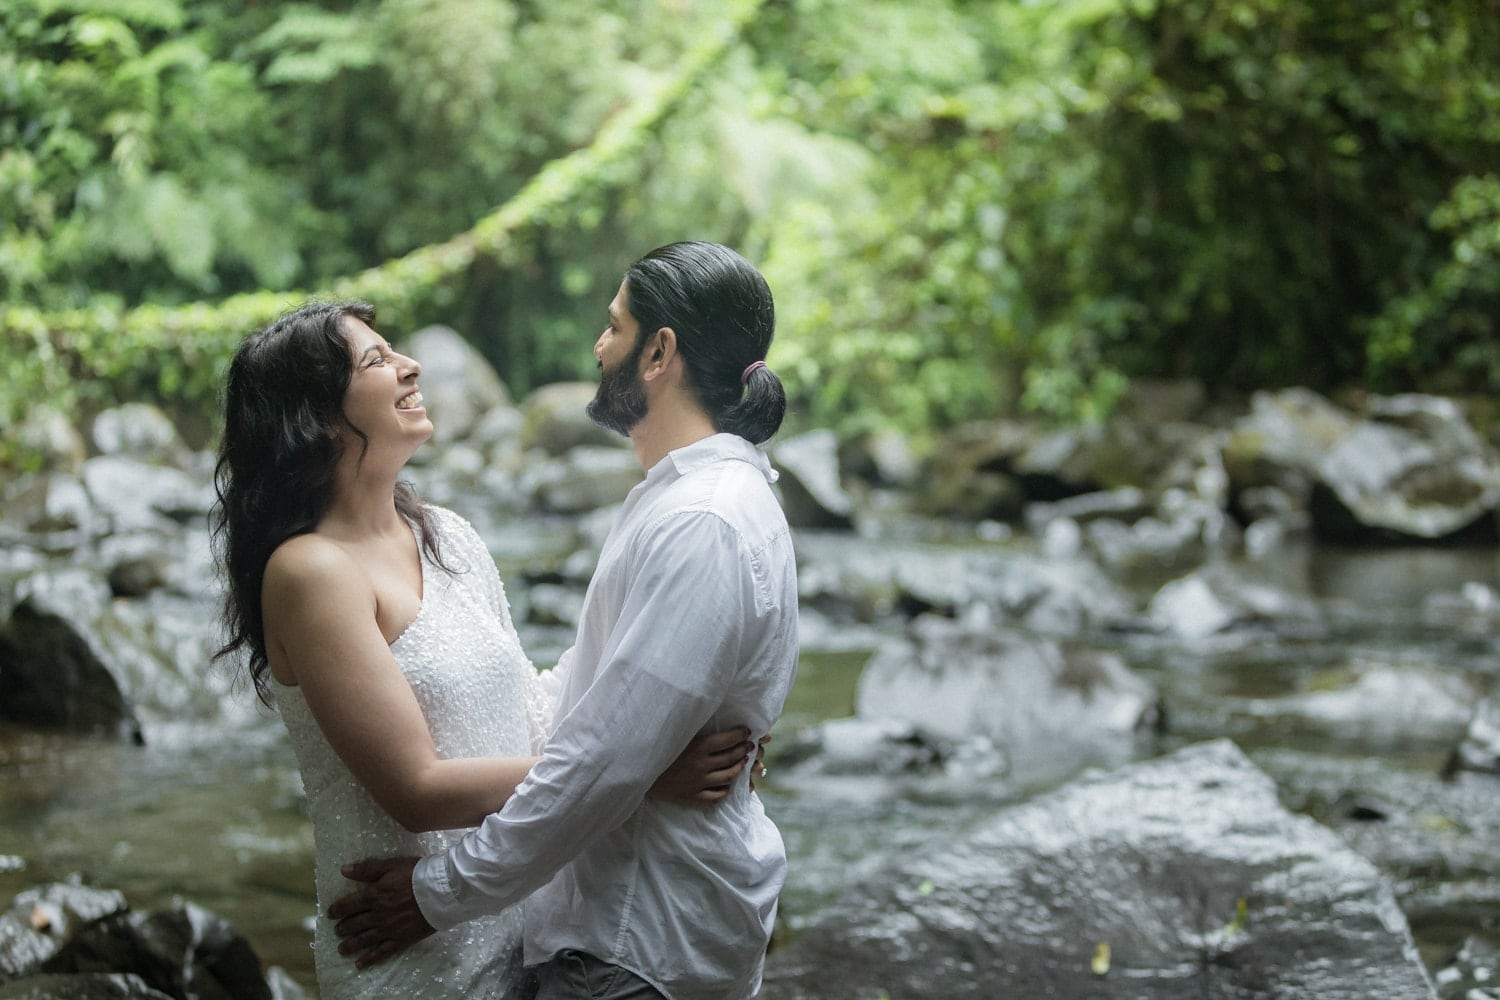 Amberene-Farhan-Engagement-Photos-La-Fortuna-Waterfall-13.jpg